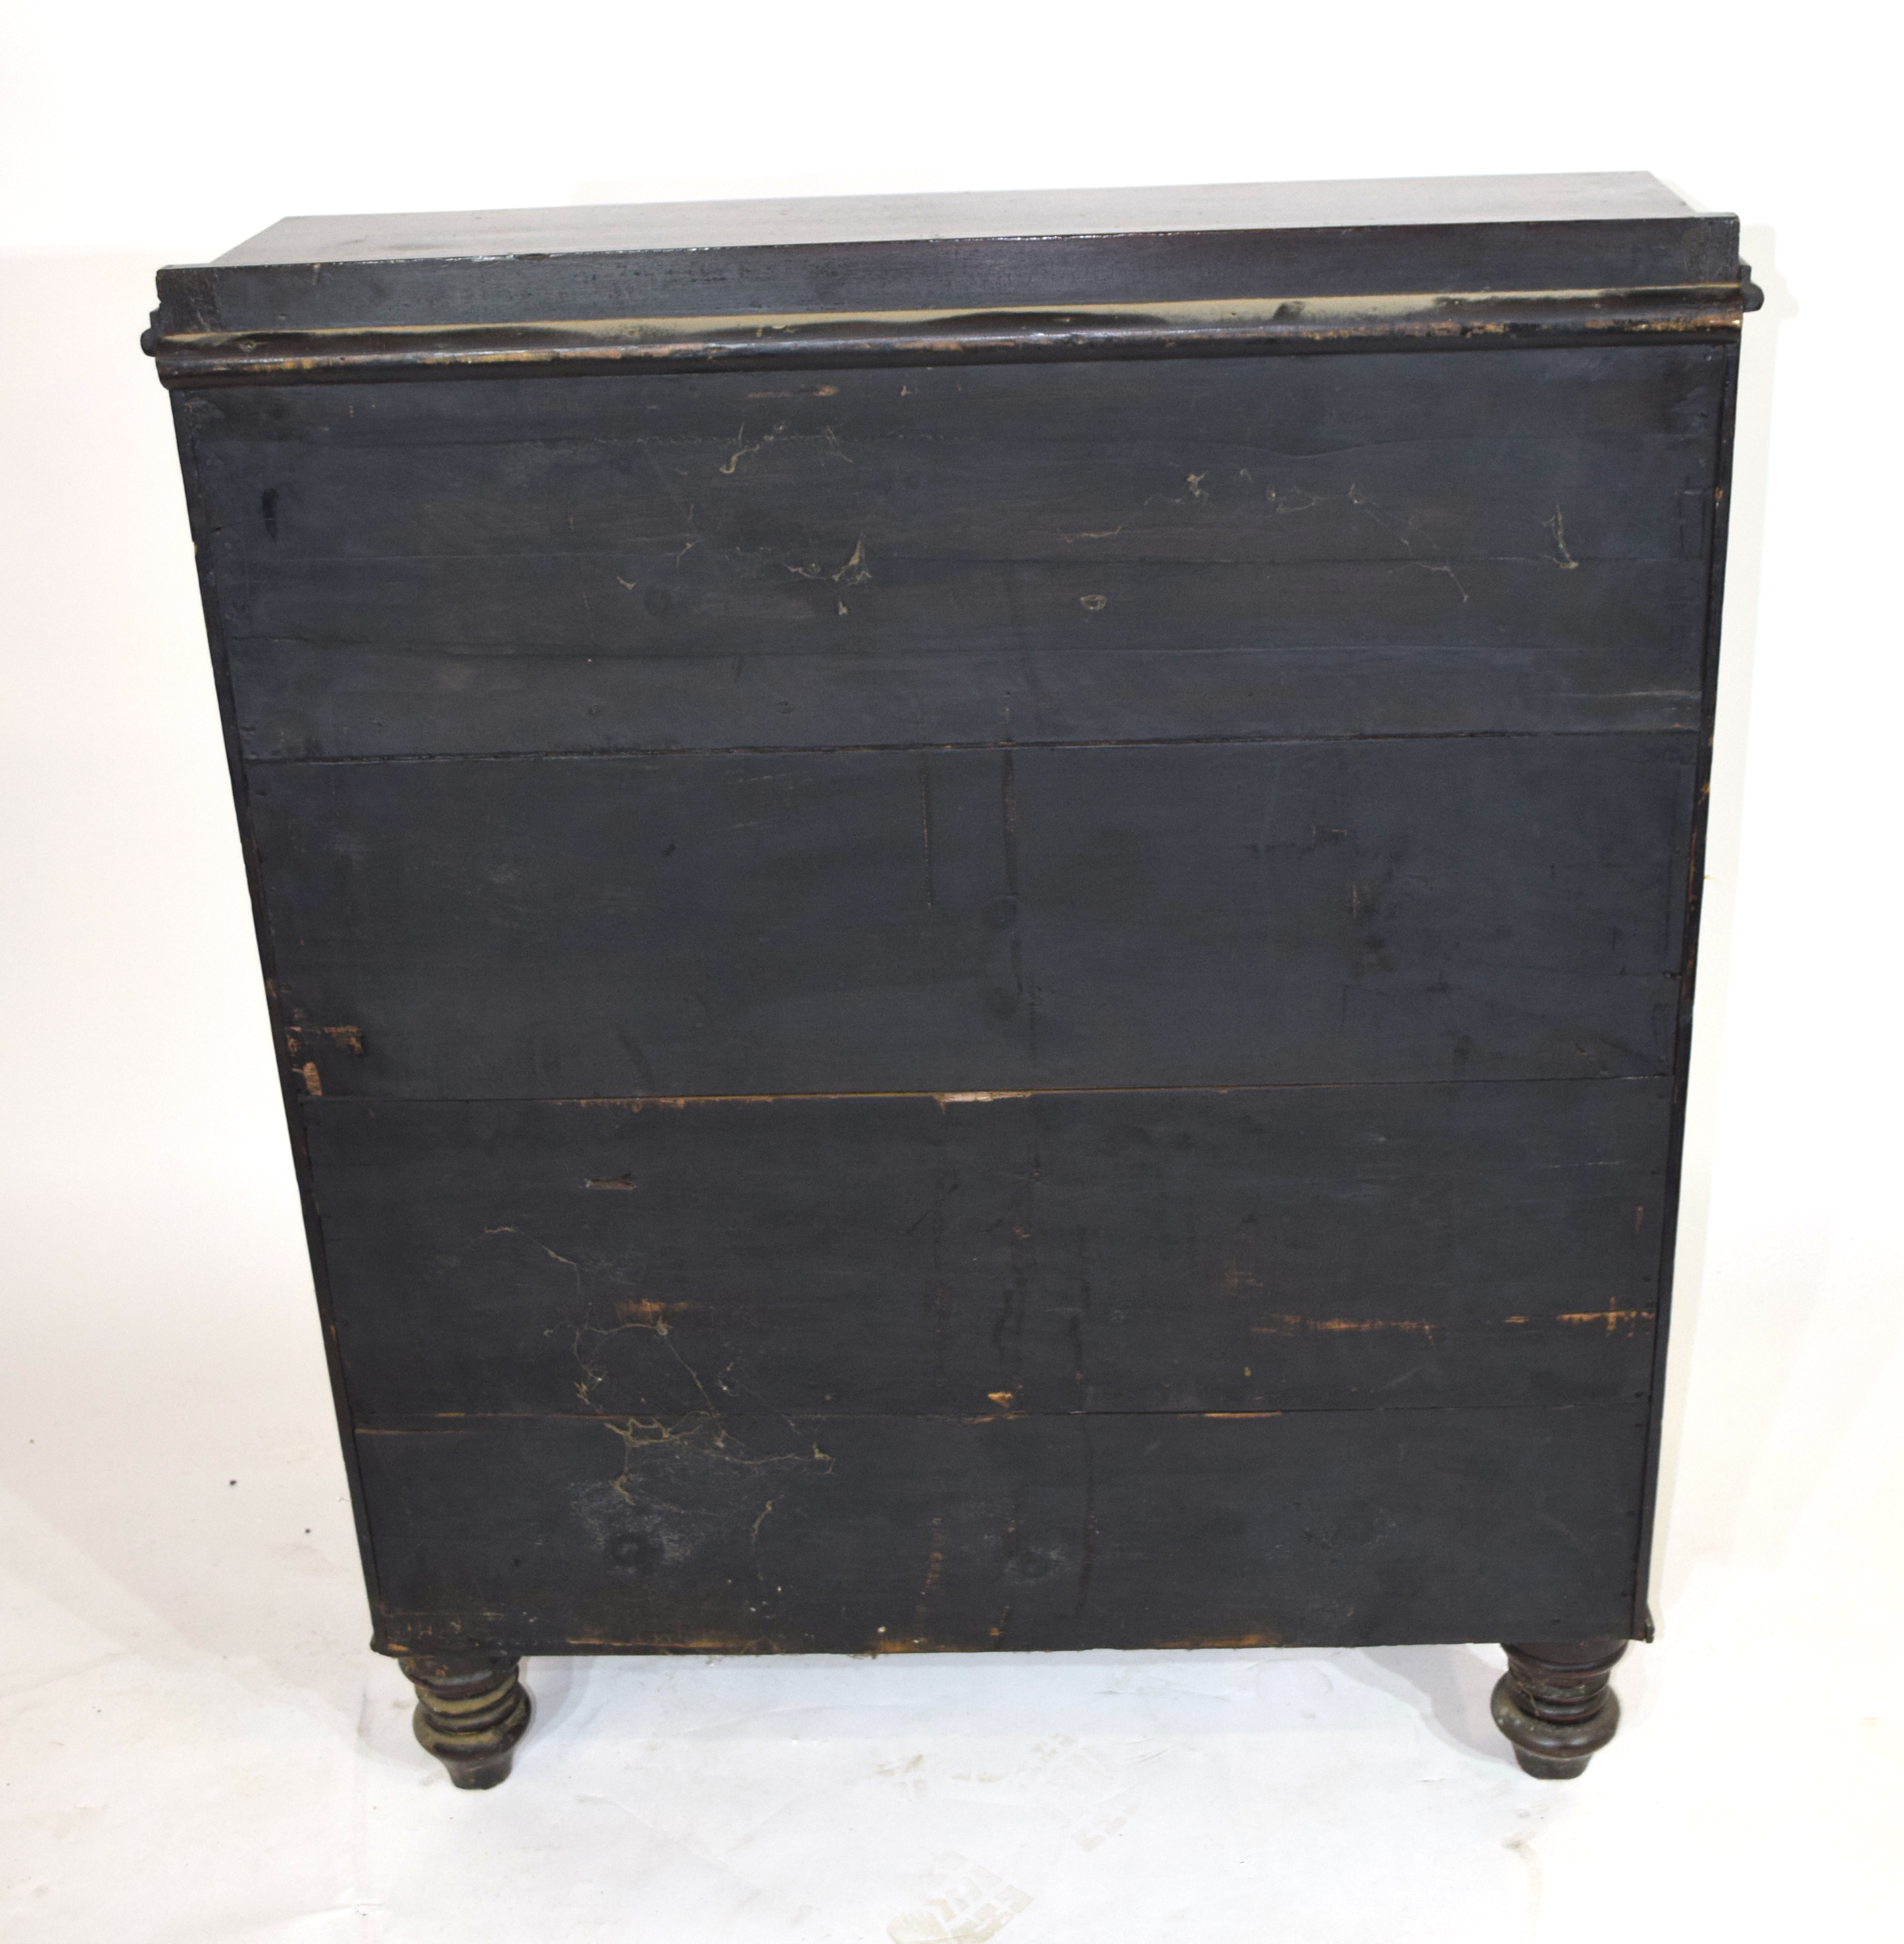 Late 19th/Early 20th century mahogany bureau with full front decorated with carved floral detail - Image 5 of 5